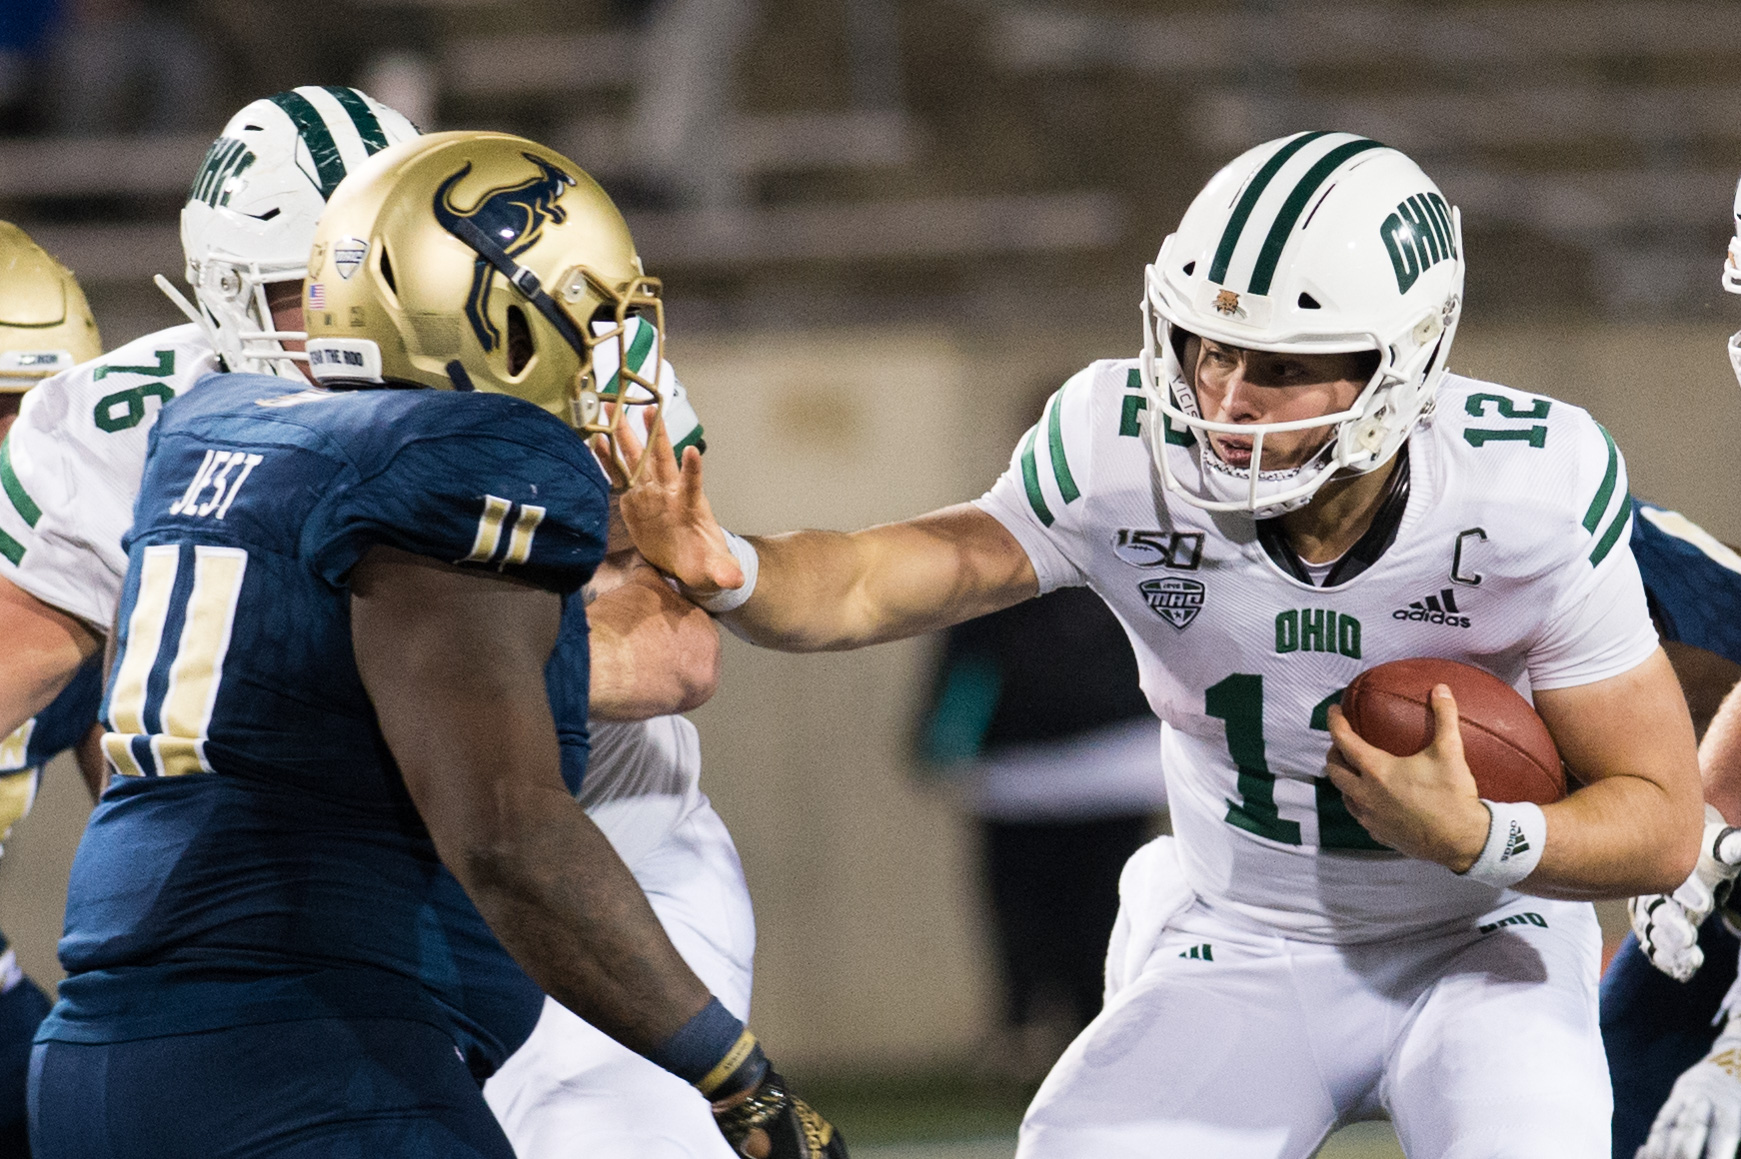 Ohio Football Concludes 2019 Regular Season With Rout of Akron, Earns Bowl Eligibility for 11th-Straight Year